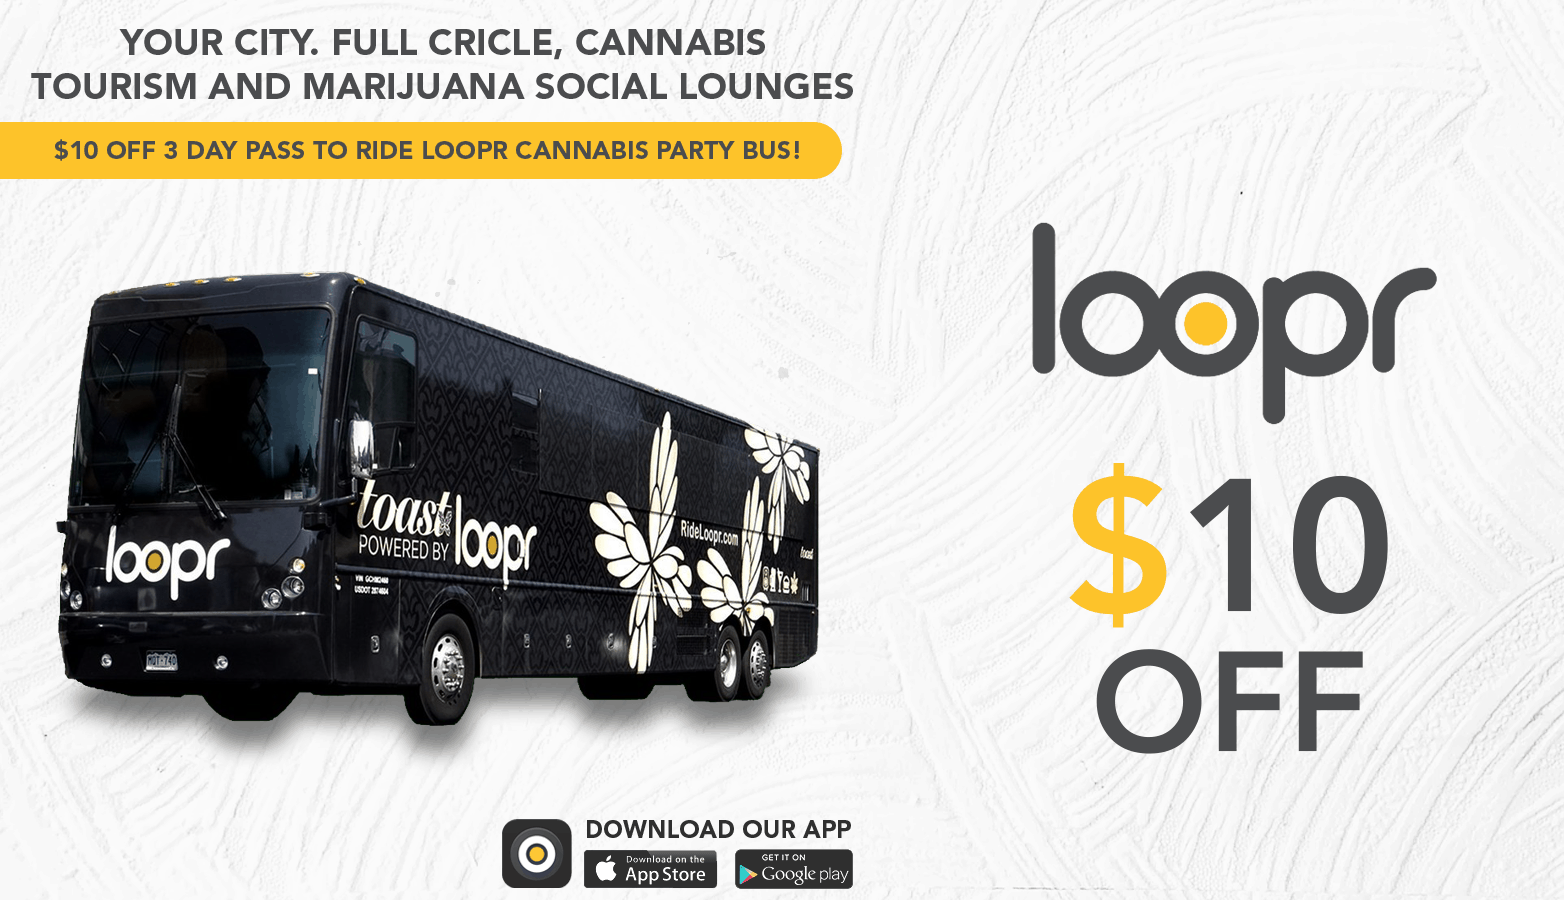 Loopr Cannabis Denver Party Bus Exterior - Save On Cannabis online Website.